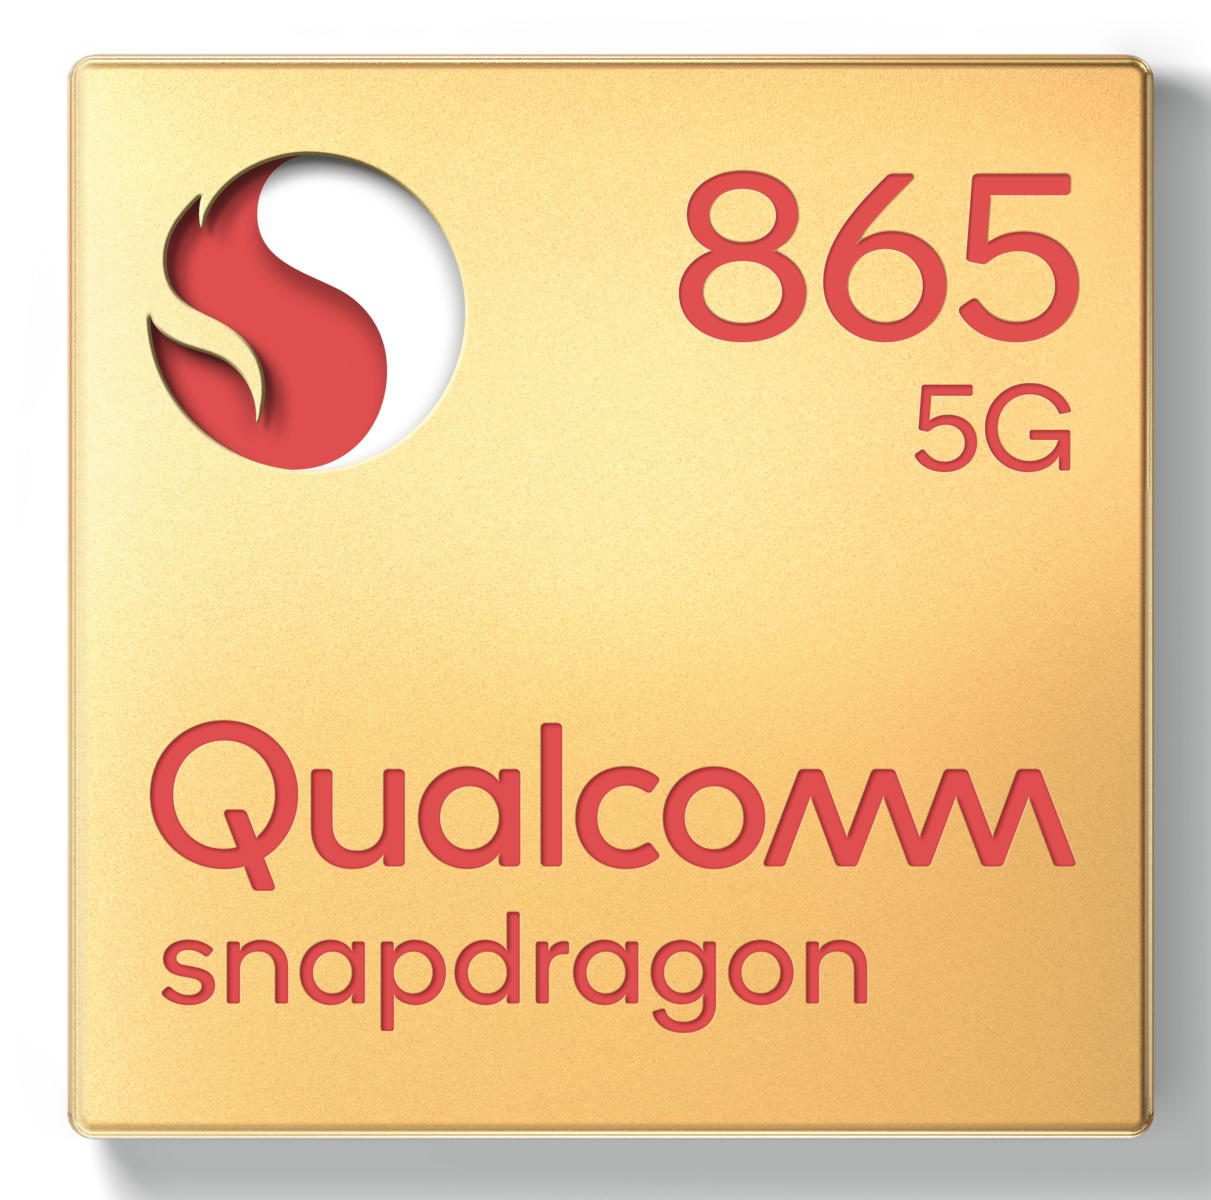 Qualcomm teases new flagship Snapdragon 865 SoC, still lacks 5G